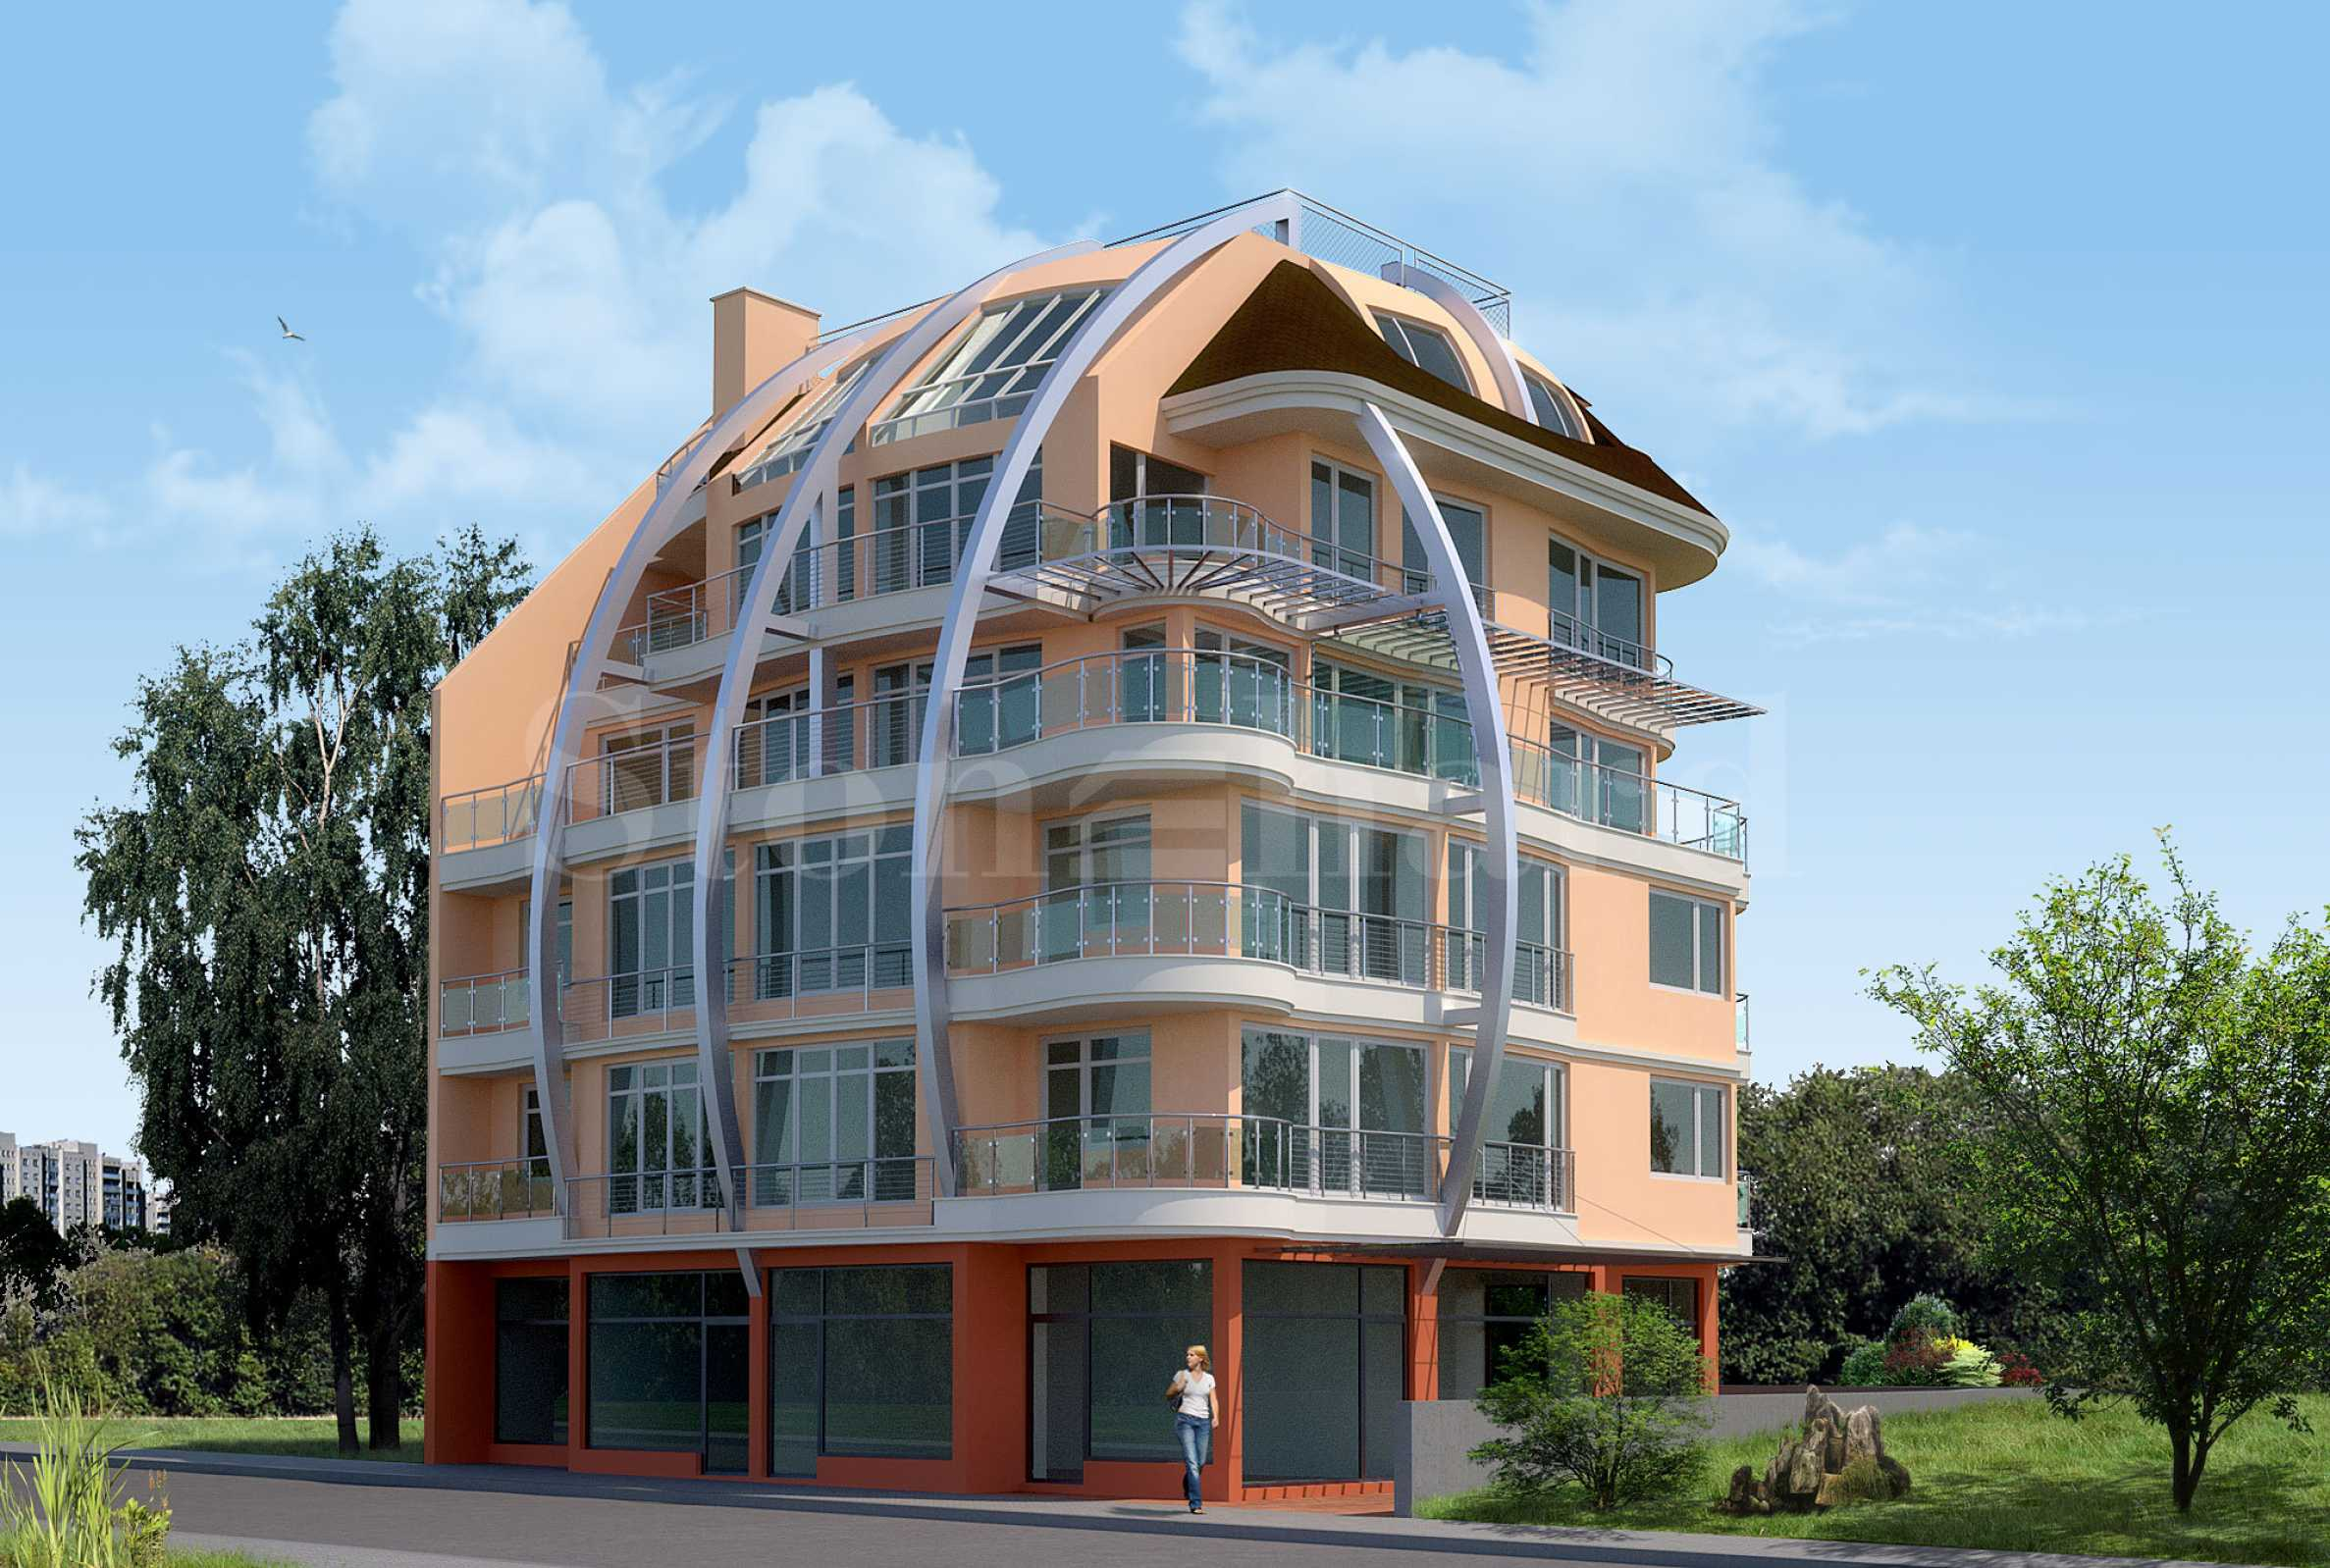 Apartments in a new residential building in the city center1 - Stonehard